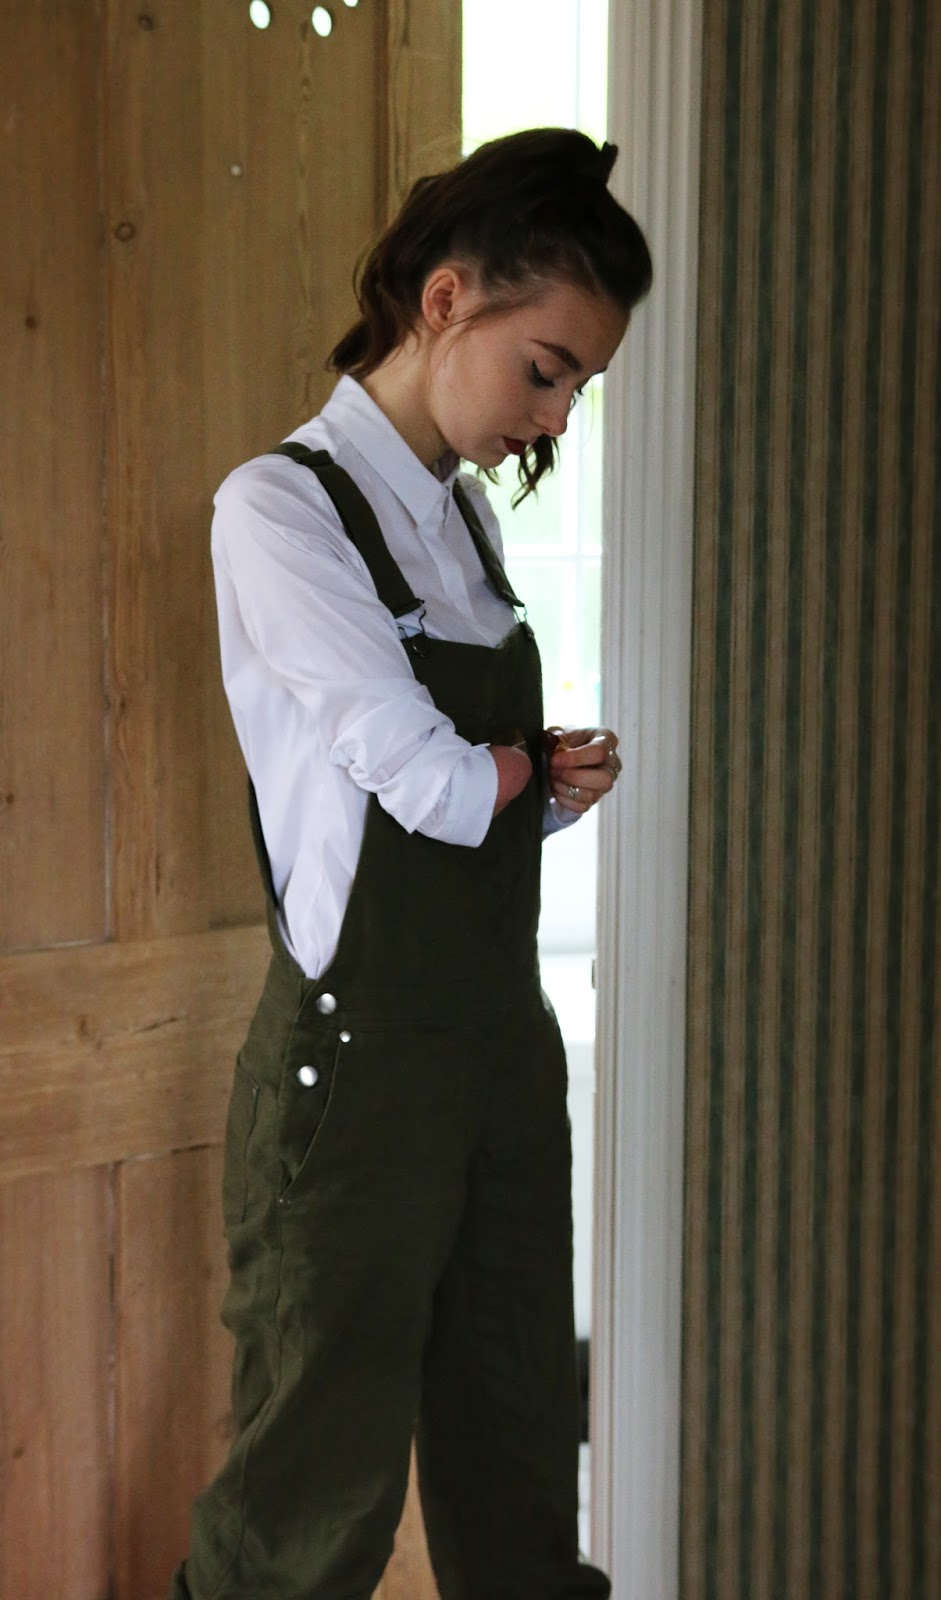 mandeville, mandeville sisters, sisters, dungarees, overalls, green, ootd, blogger, fashion, british, grace mandeville, mandeville sisters, green overalls, green dungarees, asos, cos shirt,